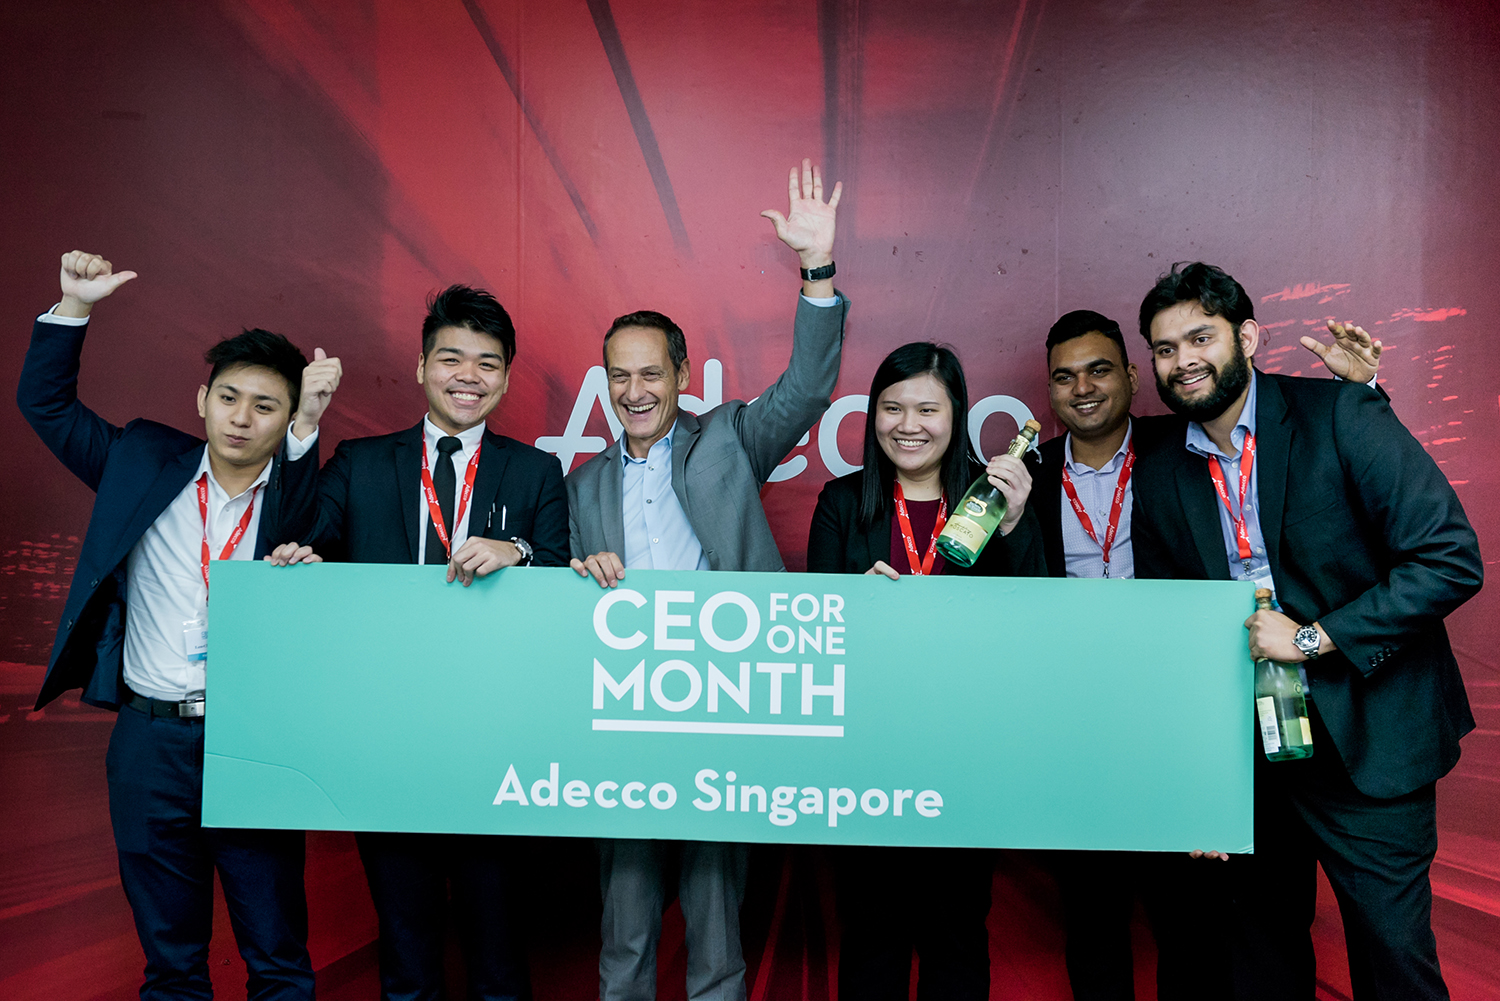 Adecco candidates holding a banner